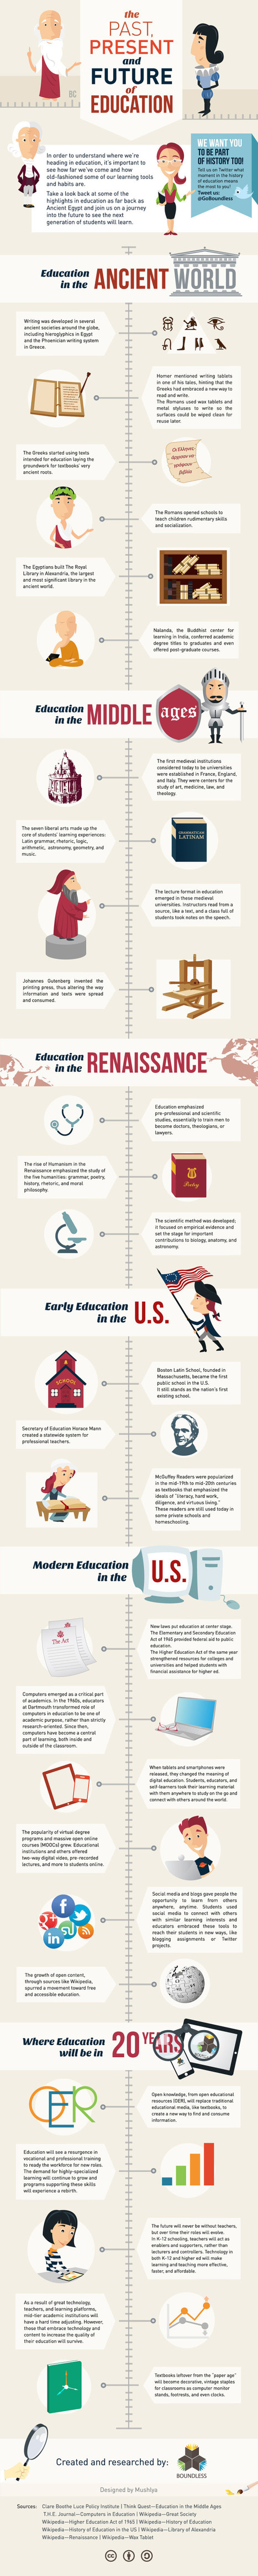 A Visual Guide To The Past, Present, And Future Of Education - Edudemic | Moodle and Web 2.0 | Scoop.it